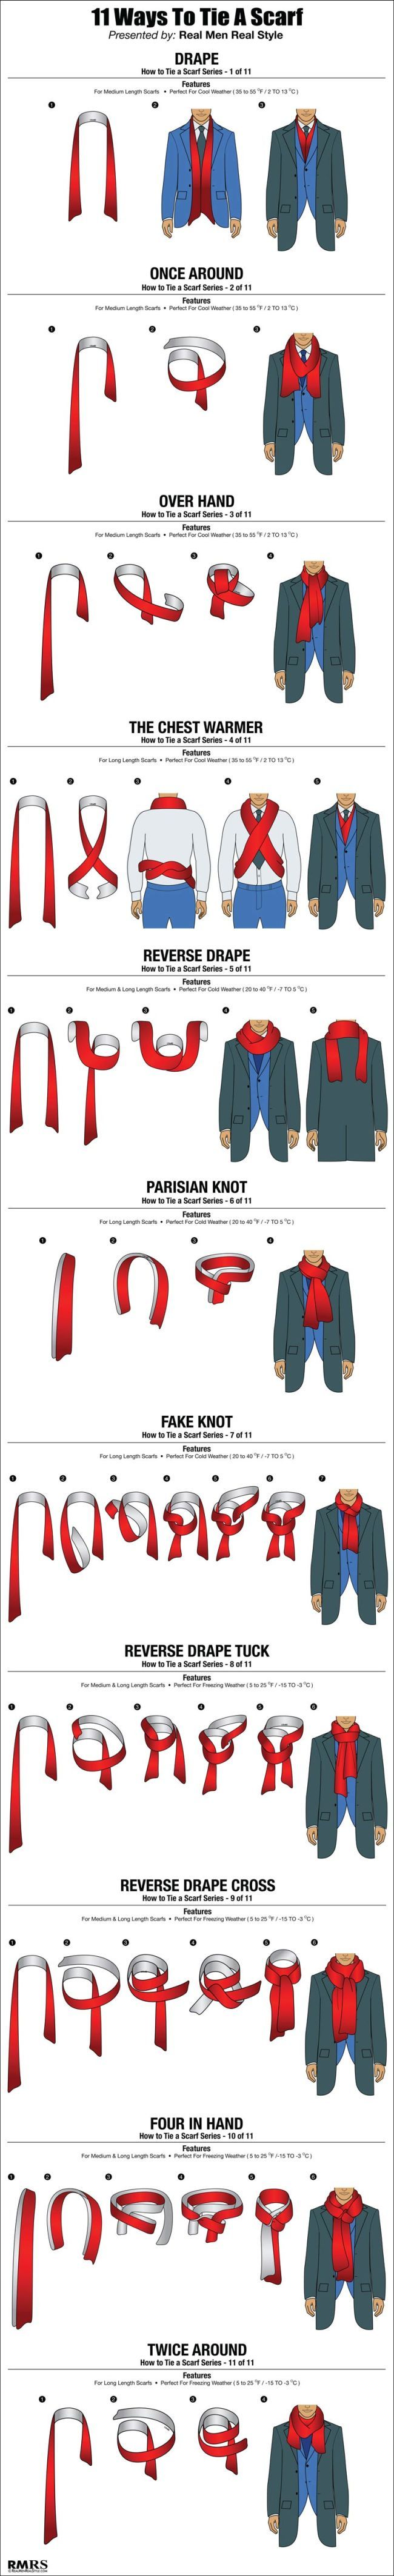 17 Best Idees Images On Pinterest Man Style Men Wear And Tie Knots How To A Trinity Knot Diagram Murrell Necktie 11 Ways Scarf For Cant Wait Assist Austin With His Next Winter